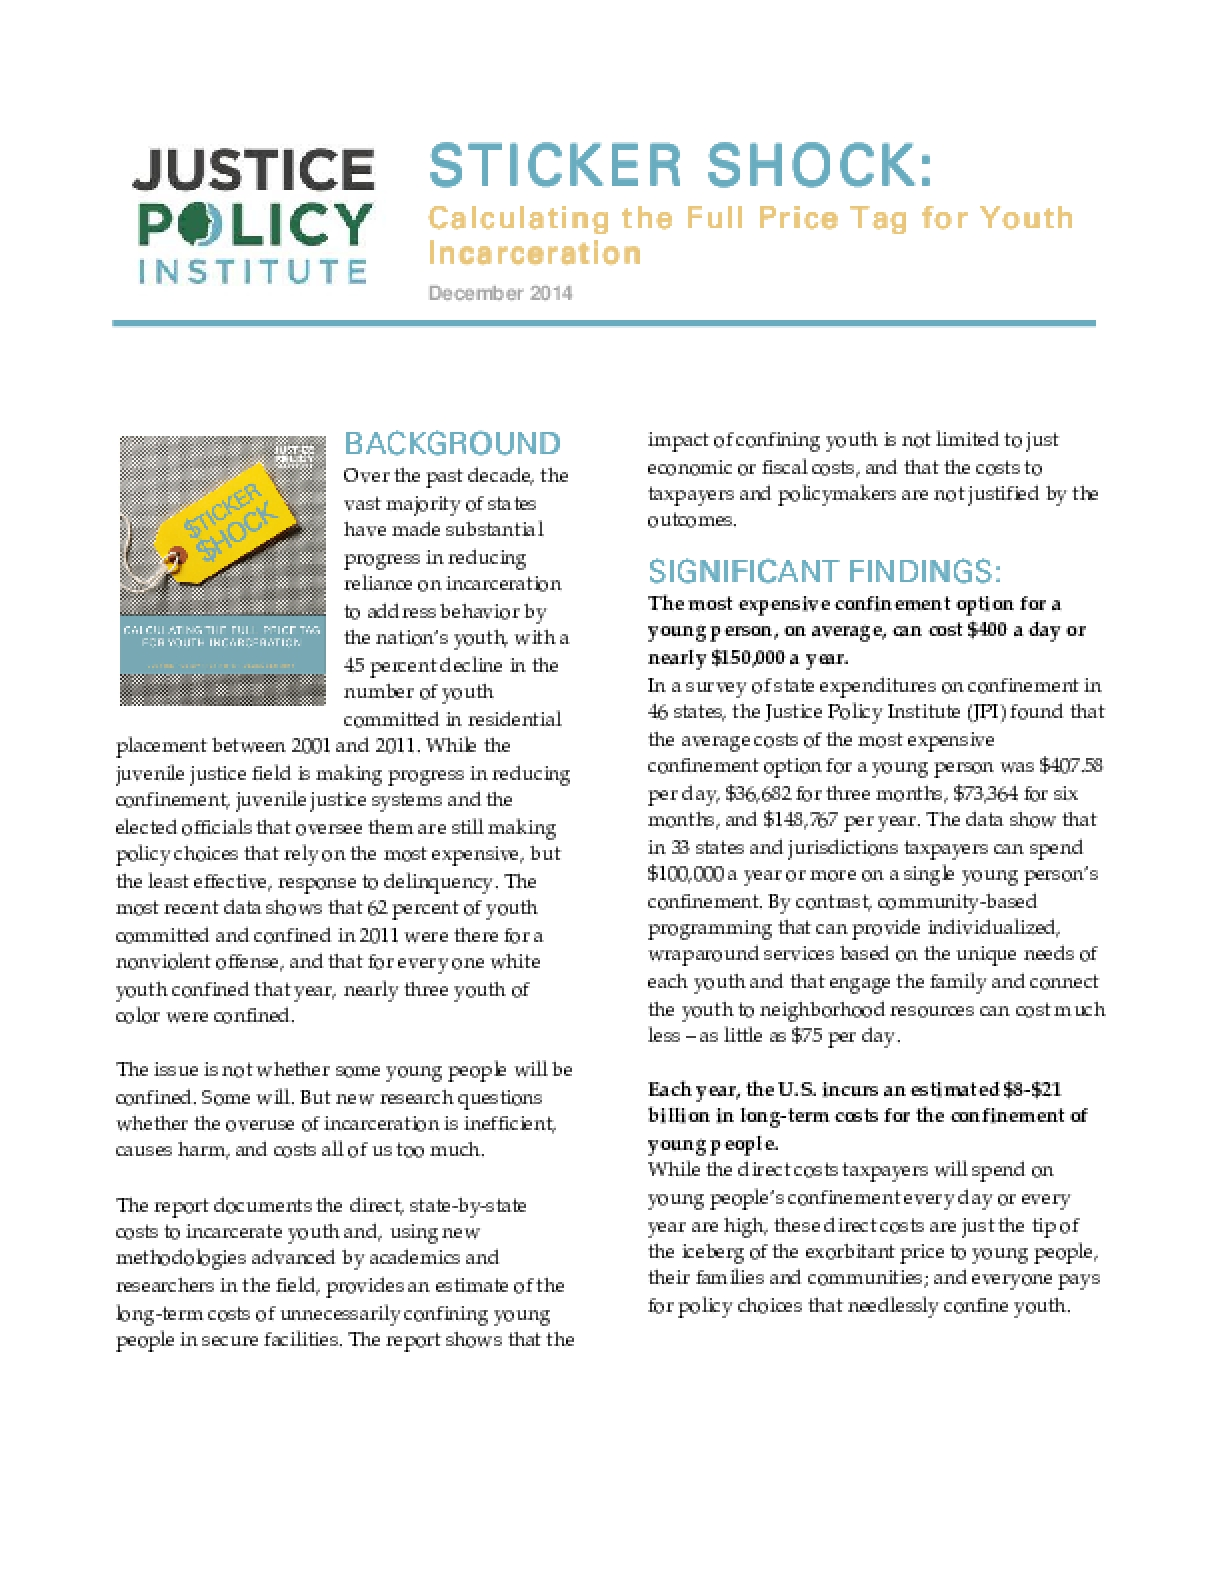 Sticker Shock: Calculating the Full Price Tag for Youth Incarceration (Executive Summary)